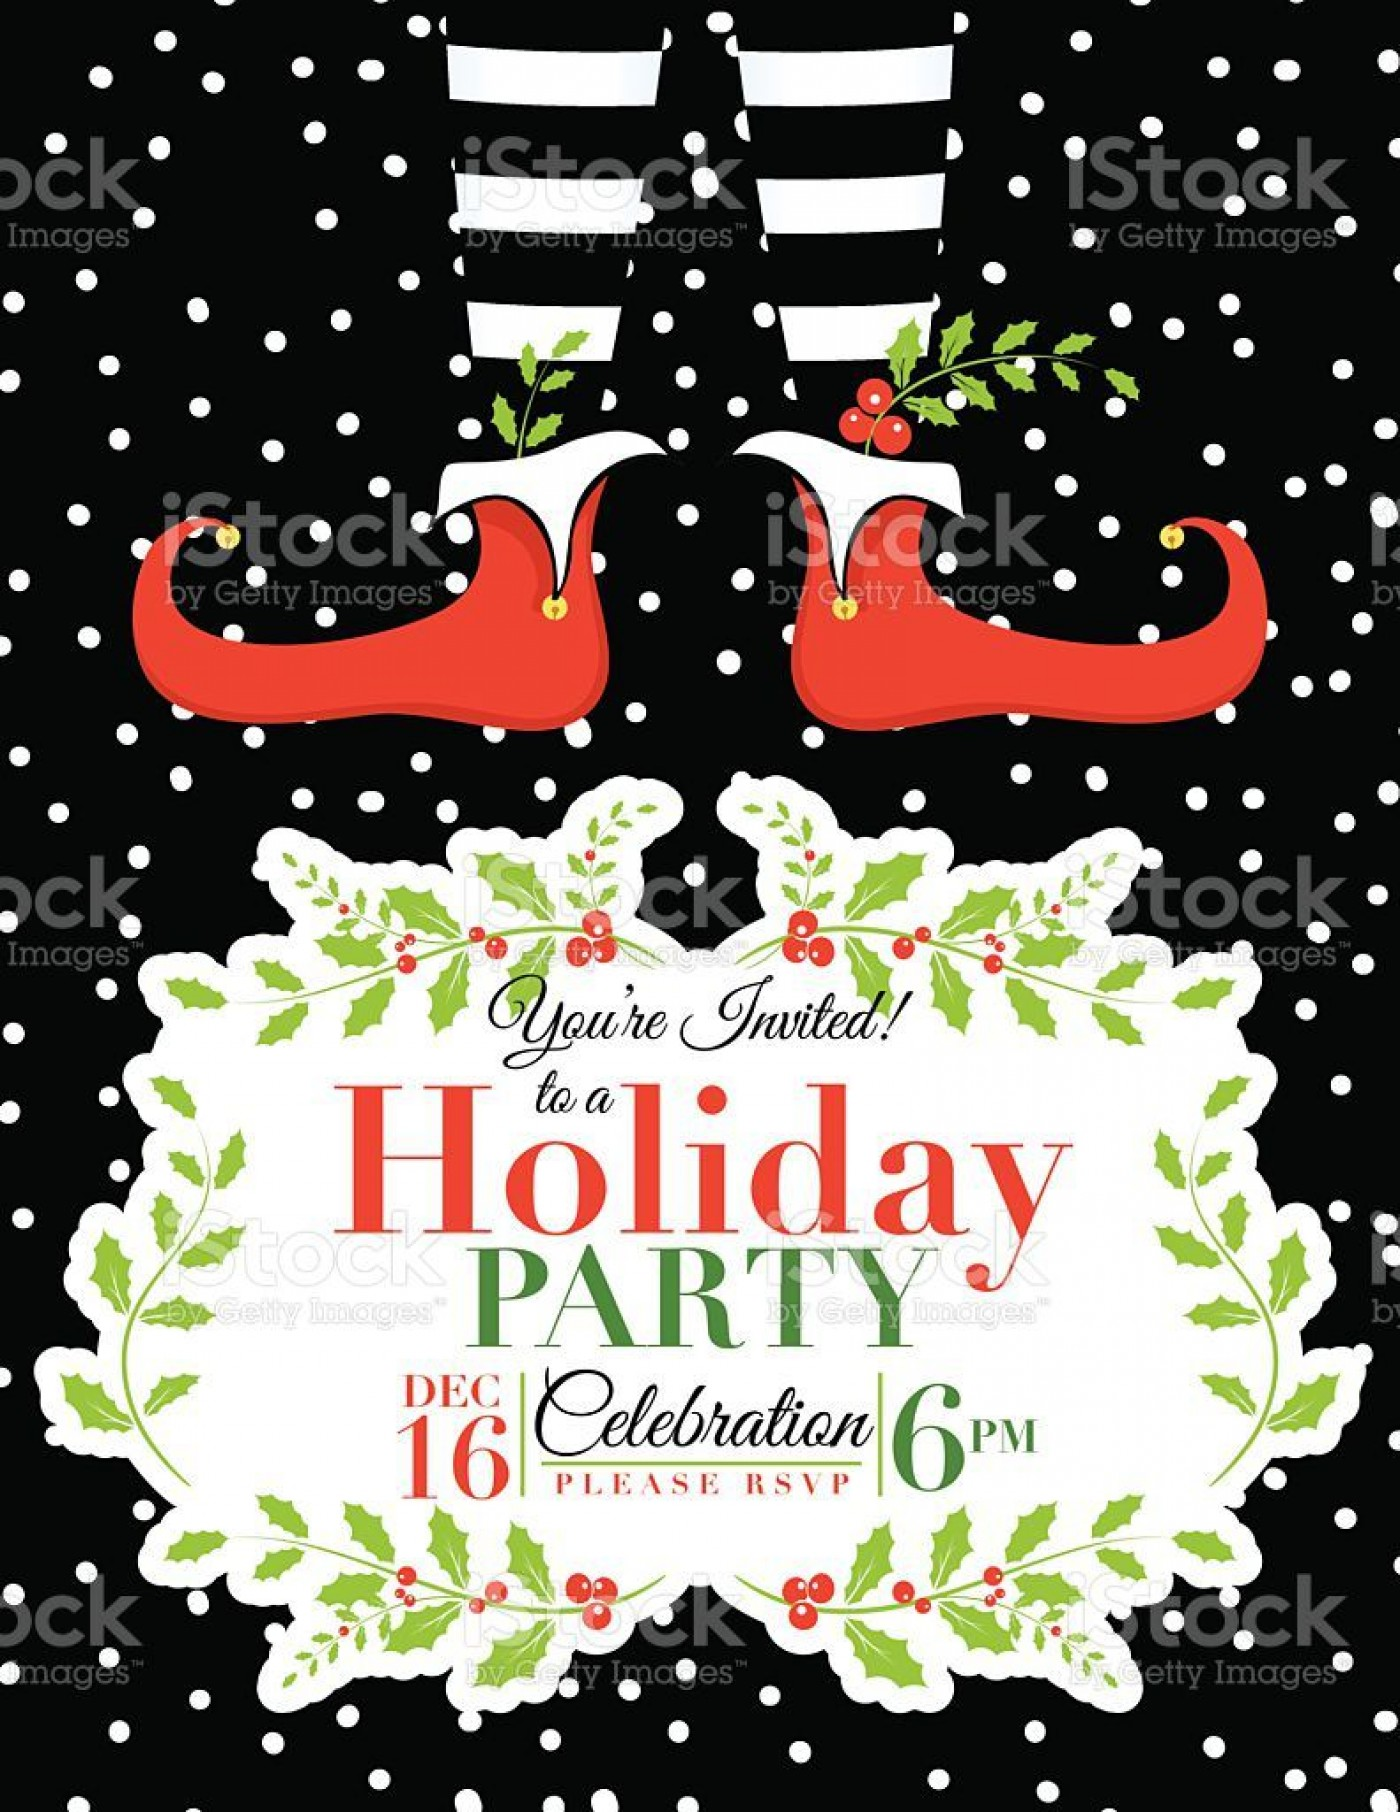 007 Wonderful Holiday Party Invitation Template Free Example  Elegant Christma Download Dinner Printable Australia1400